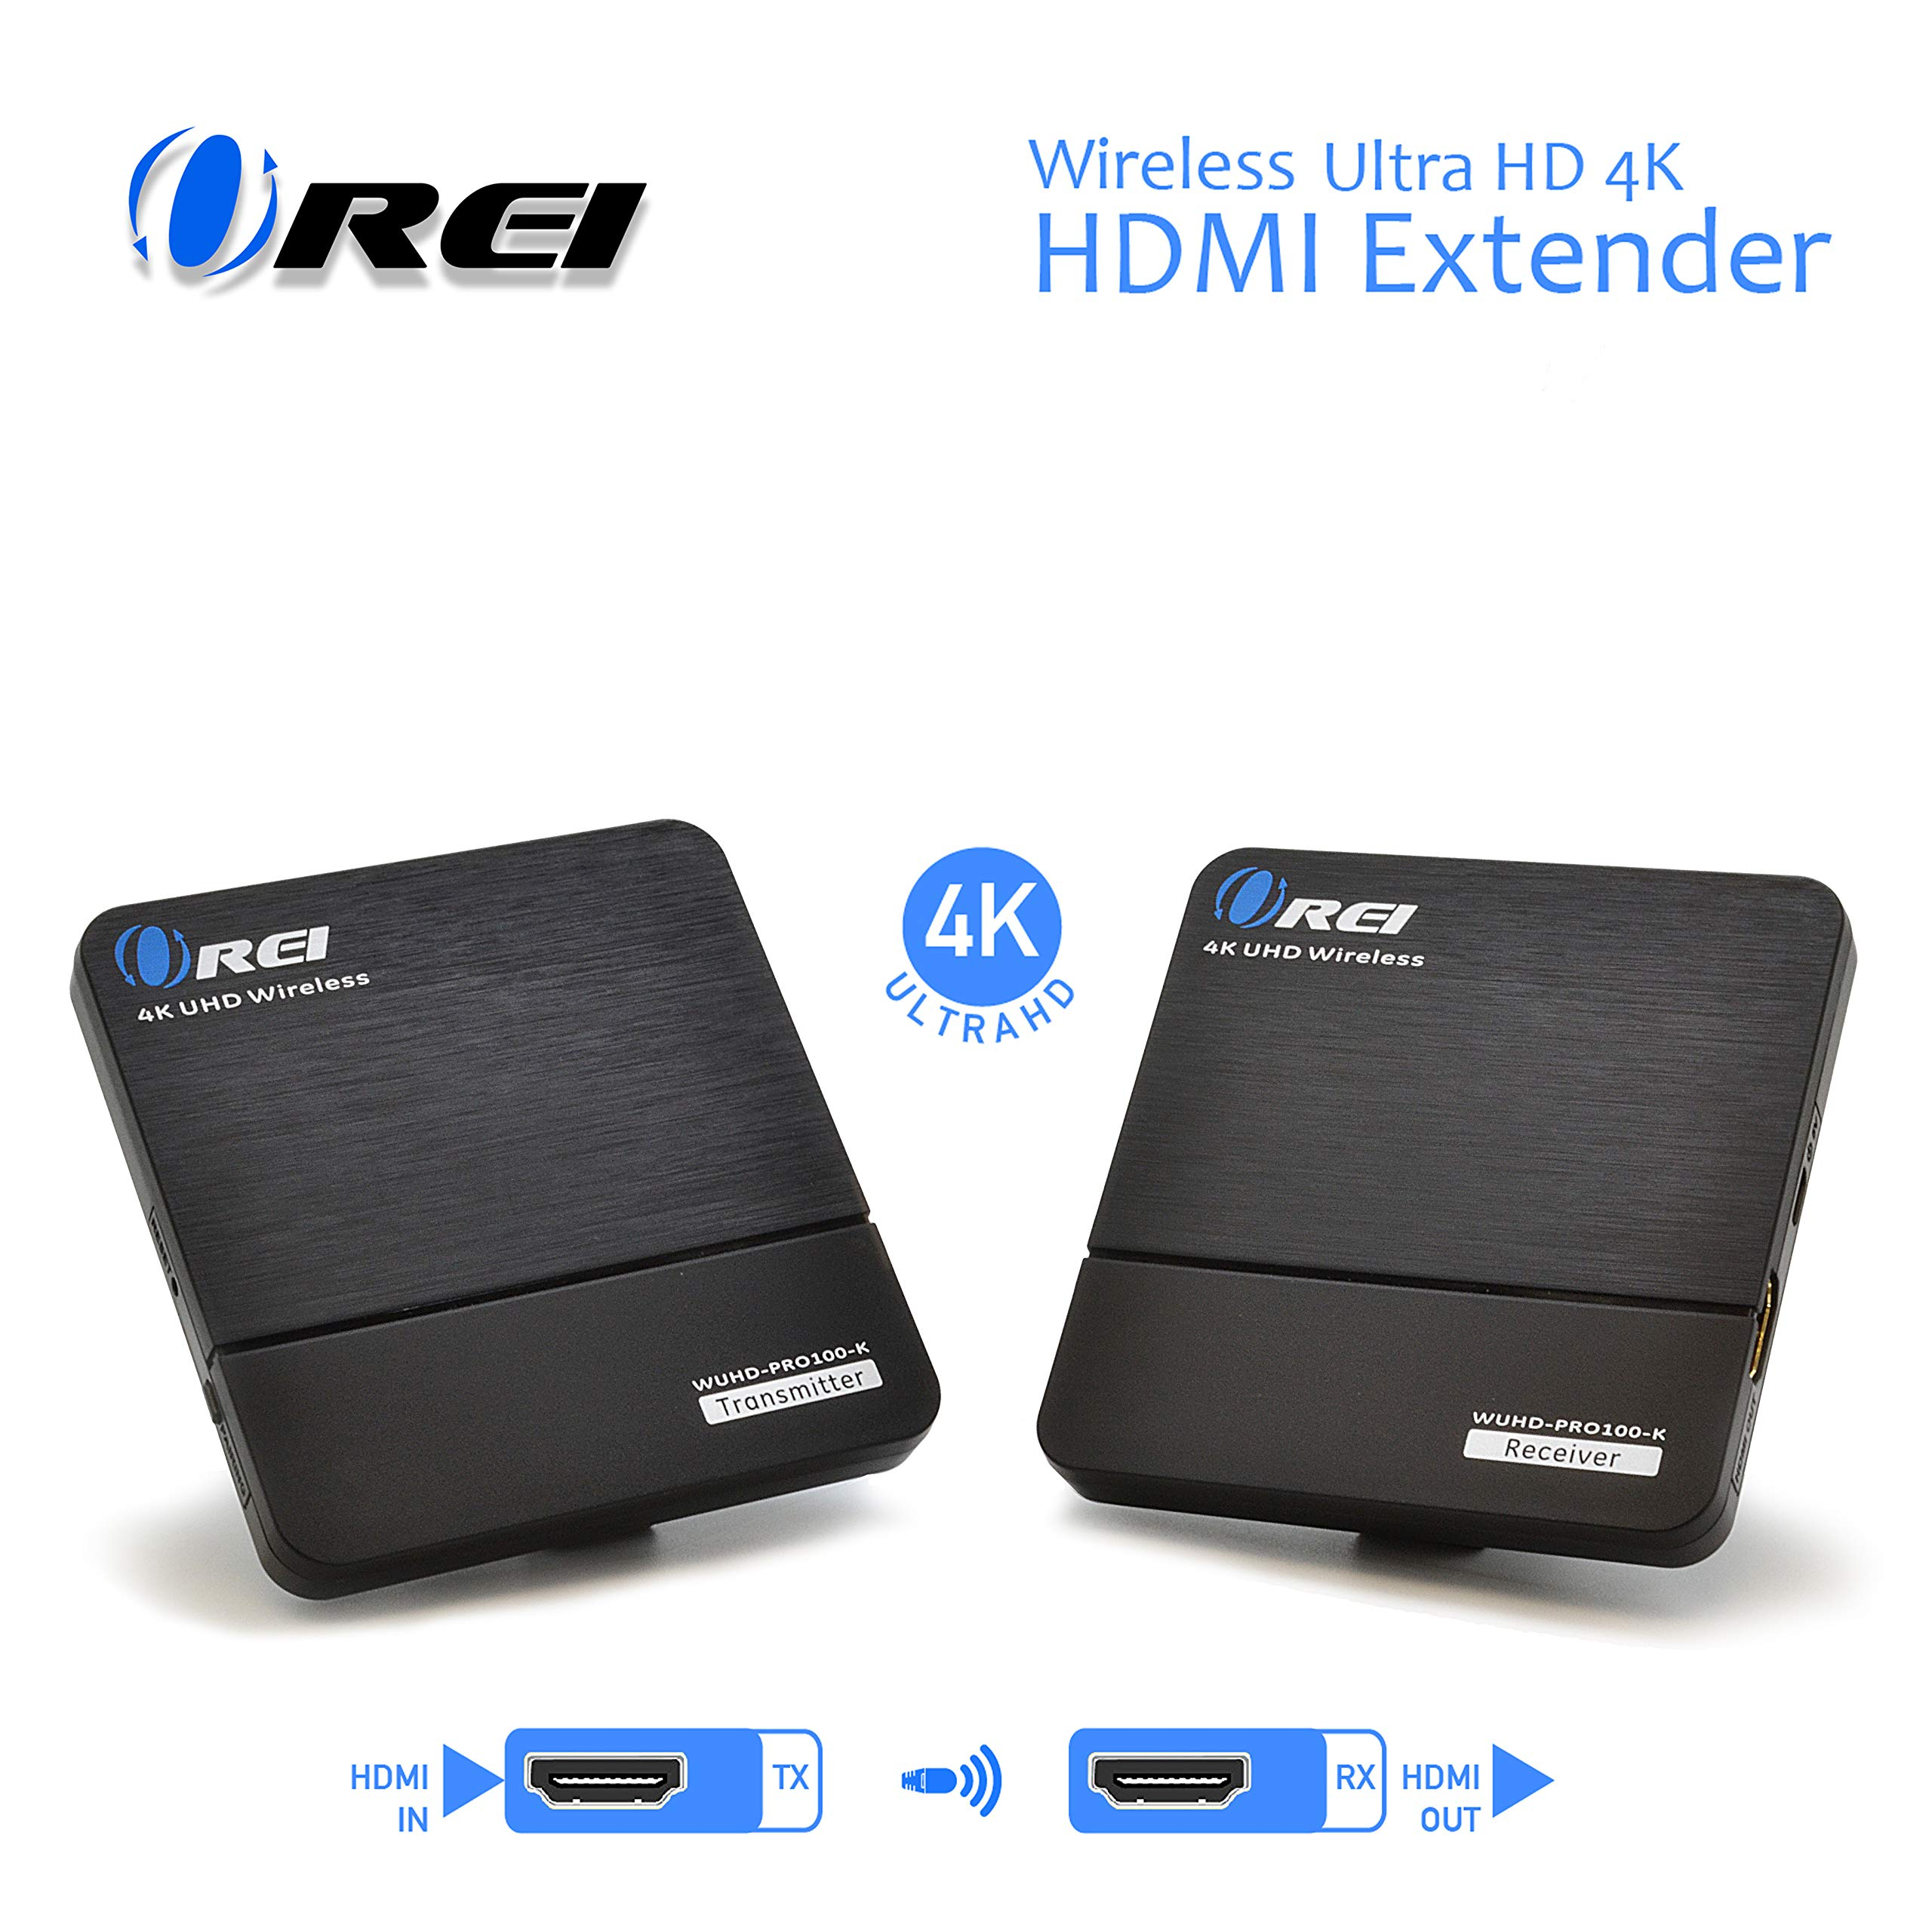 Orei Wireless Pro UltraHD HDMI Extender Transmitter & Receiver Dongle - Up to 4K @ 30Hz - Upto 100 Feet - Perfect for Streaming from Laptop, PC, Cable, Netflix, YouTube, PS4 to HDTV/Projector by Orei